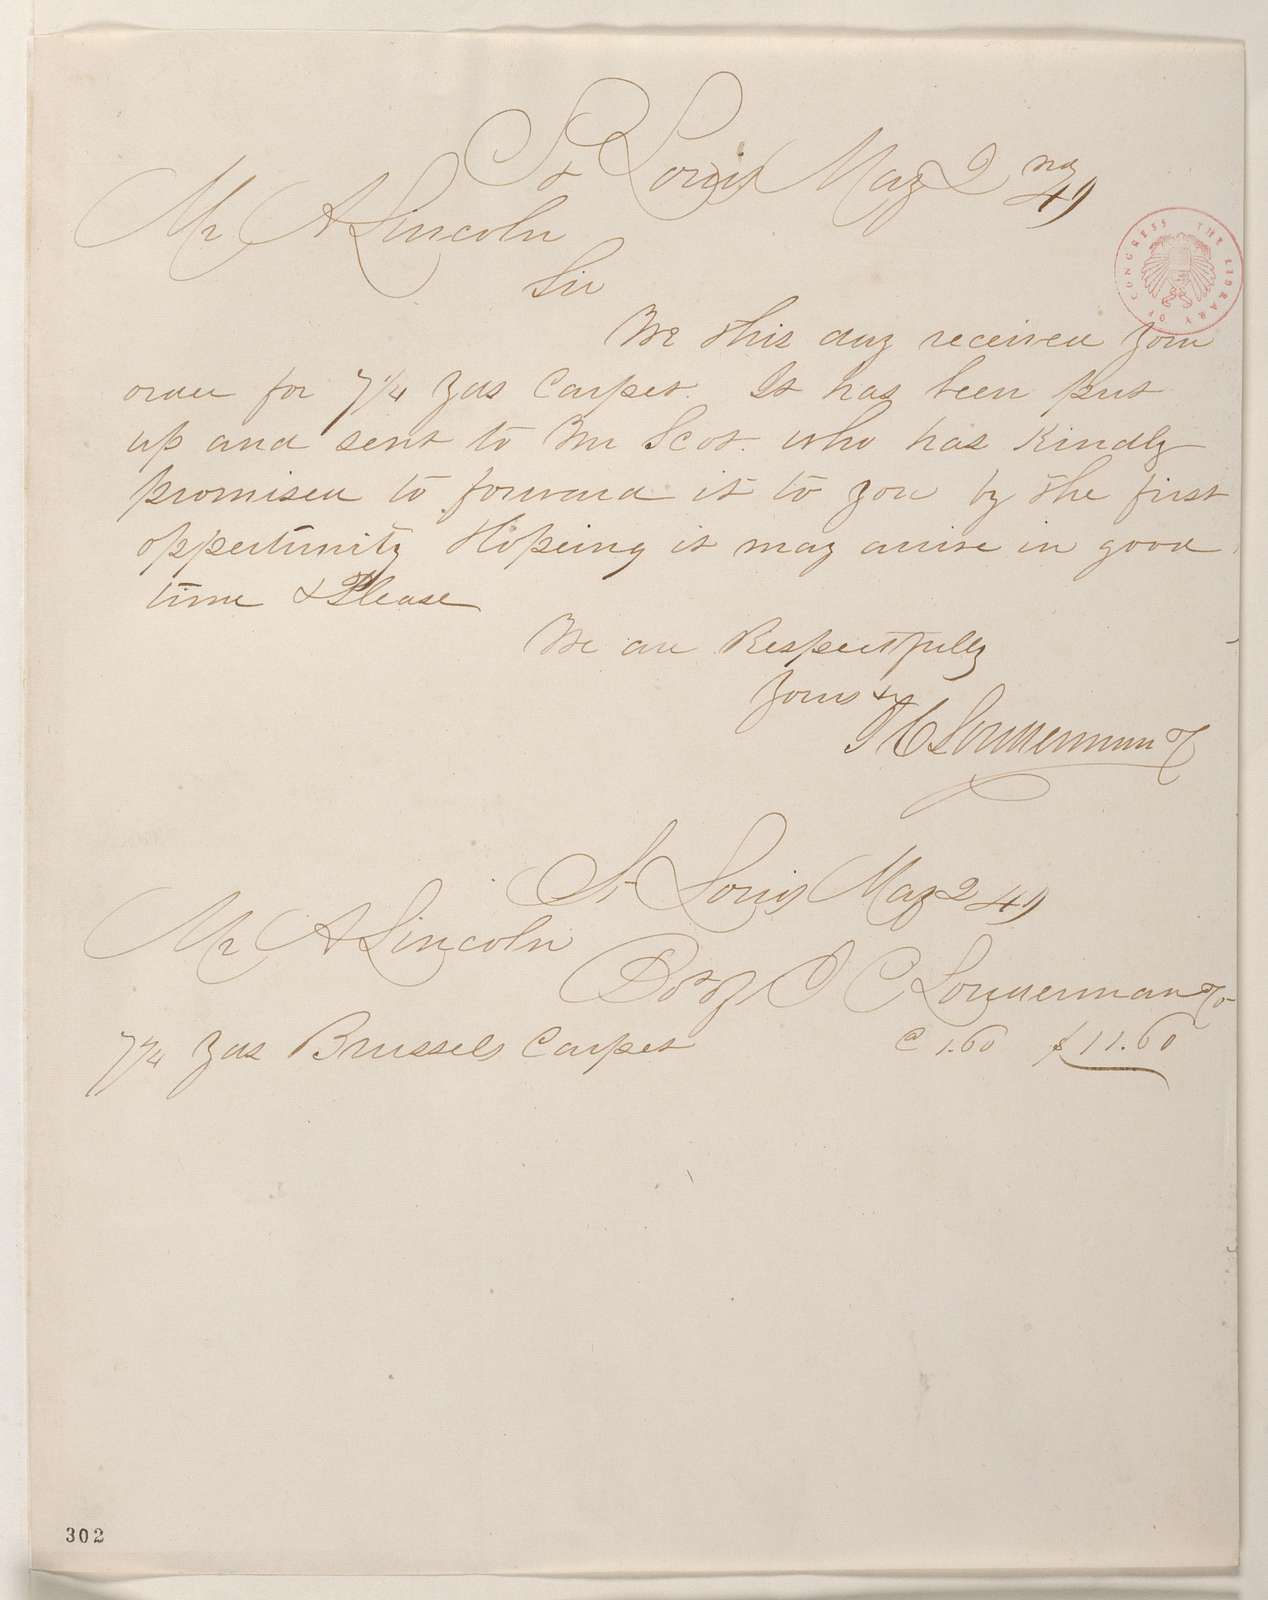 Abraham Lincoln papers: Series 1. General Correspondence. 1833-1916: J. C. Lonnerman Company to Abraham Lincoln, Wednesday, May 02, 1849 (Carpet Bill)